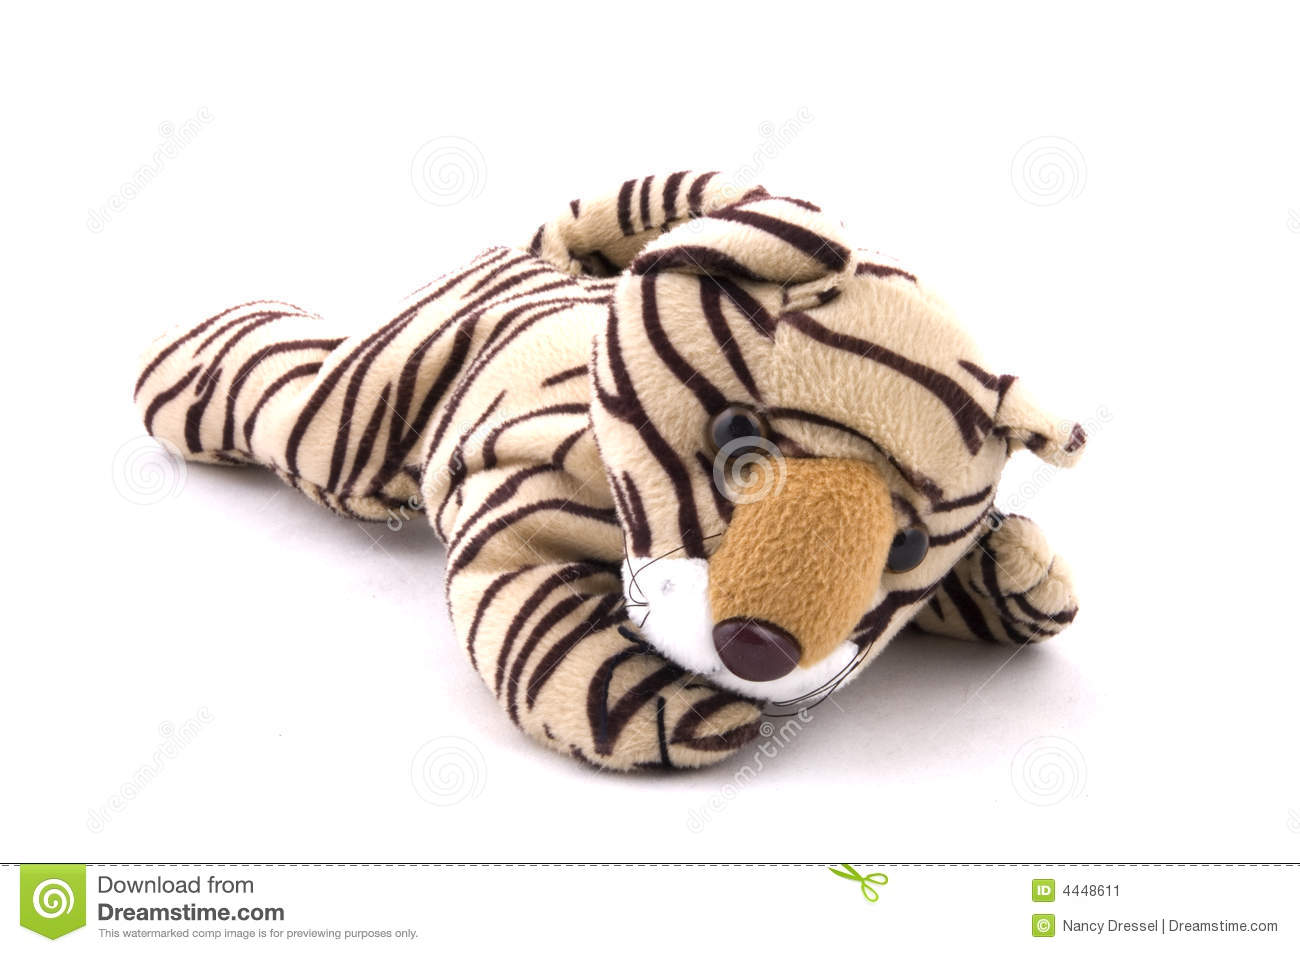 Kids tiger toyTiger Image For Kids